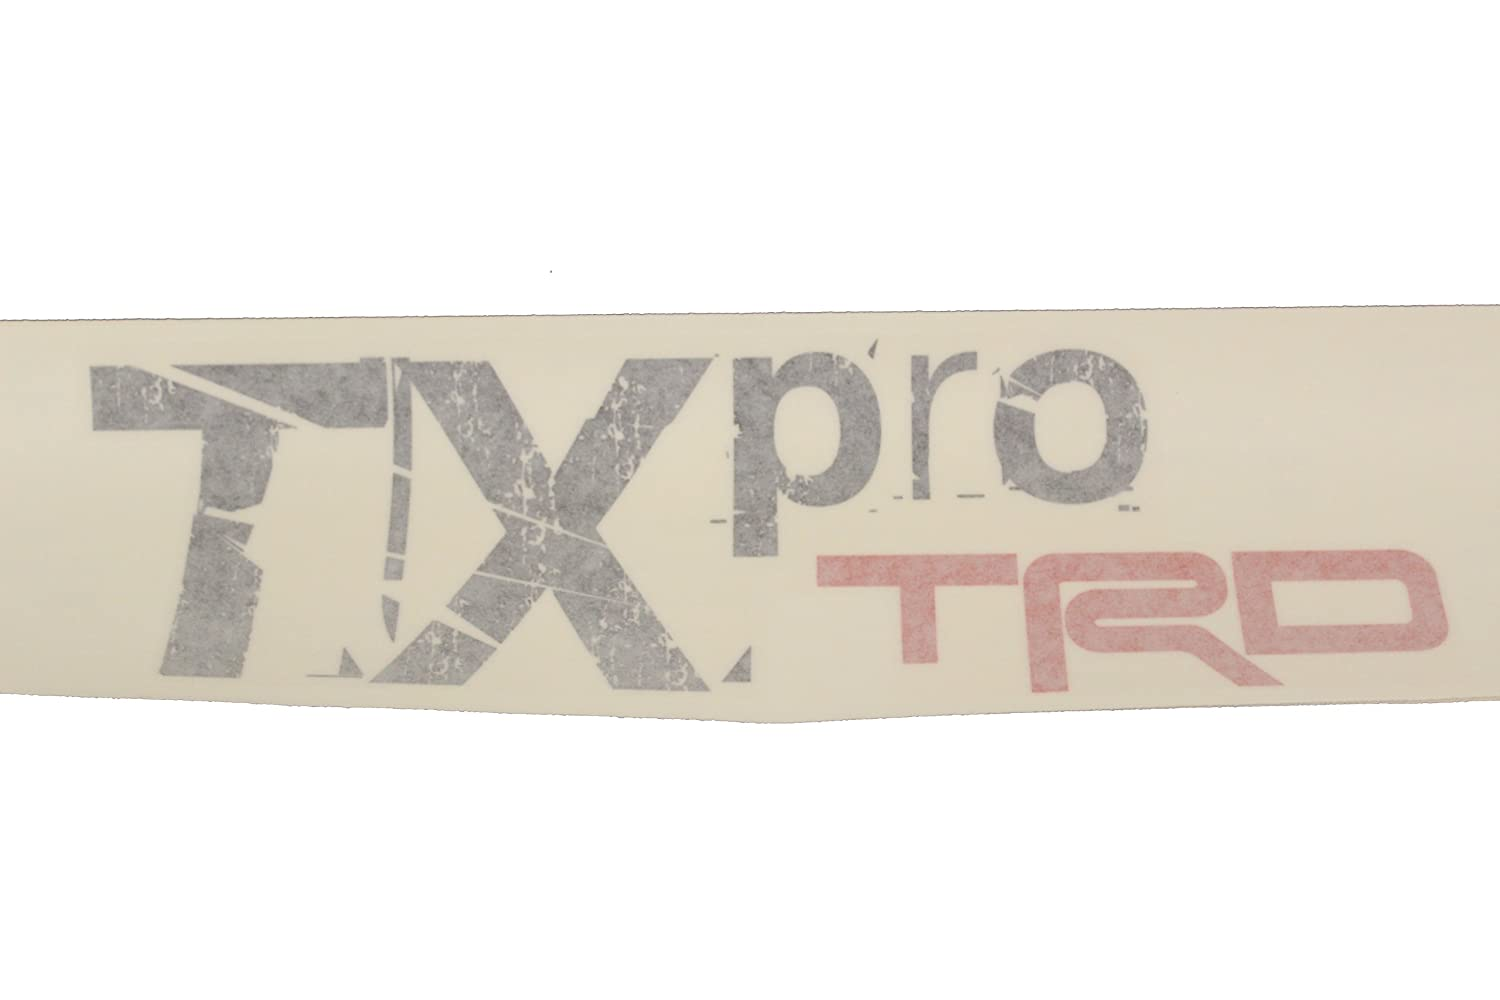 Genuine Toyota Accessories PT929-35102 Red TRD Body Graphics with TX-Pro Black Lettering